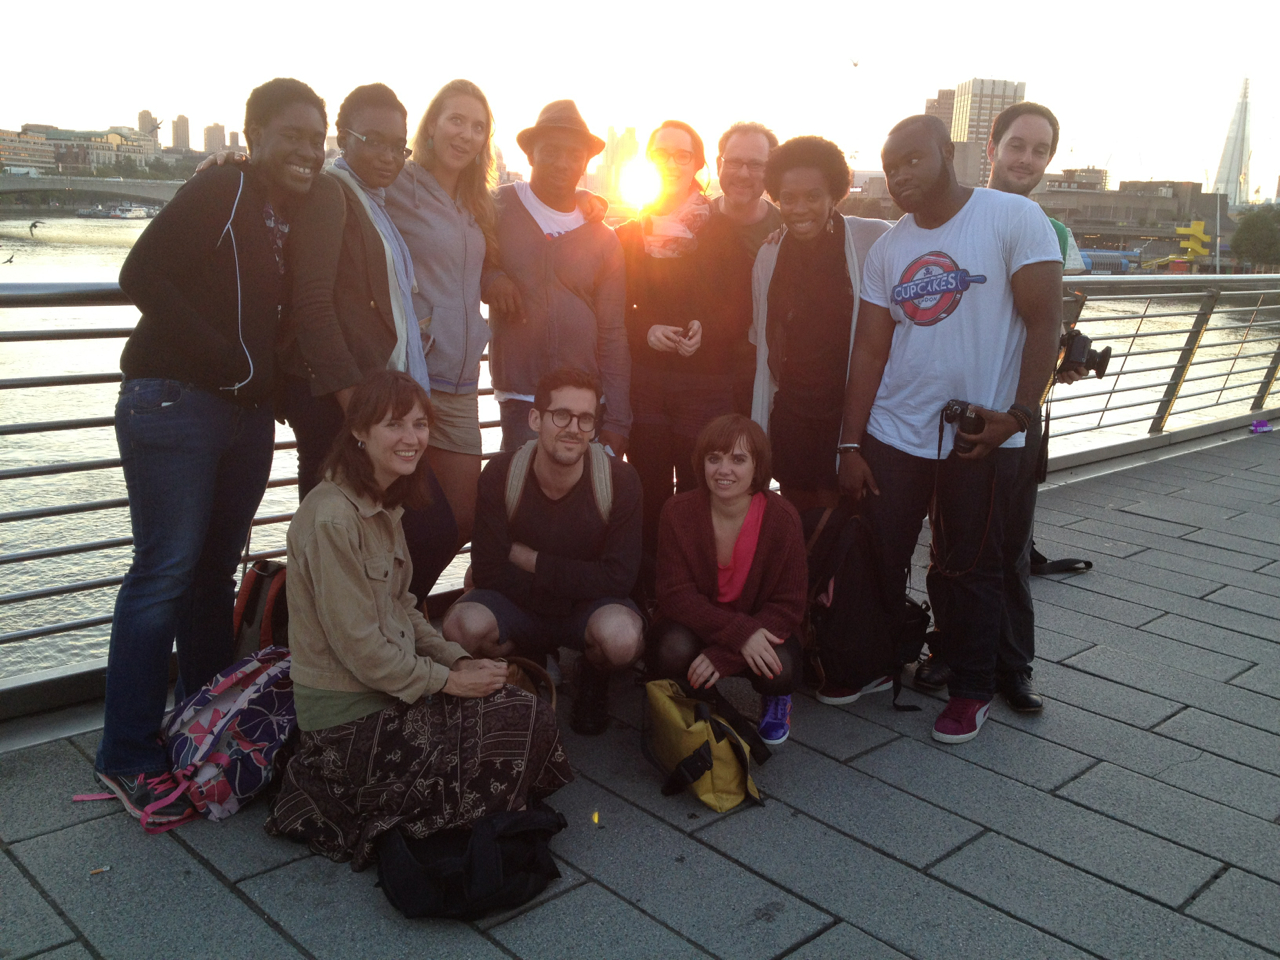 The Midnight Runners early this morning at sunrise on Hungerford Bridge.